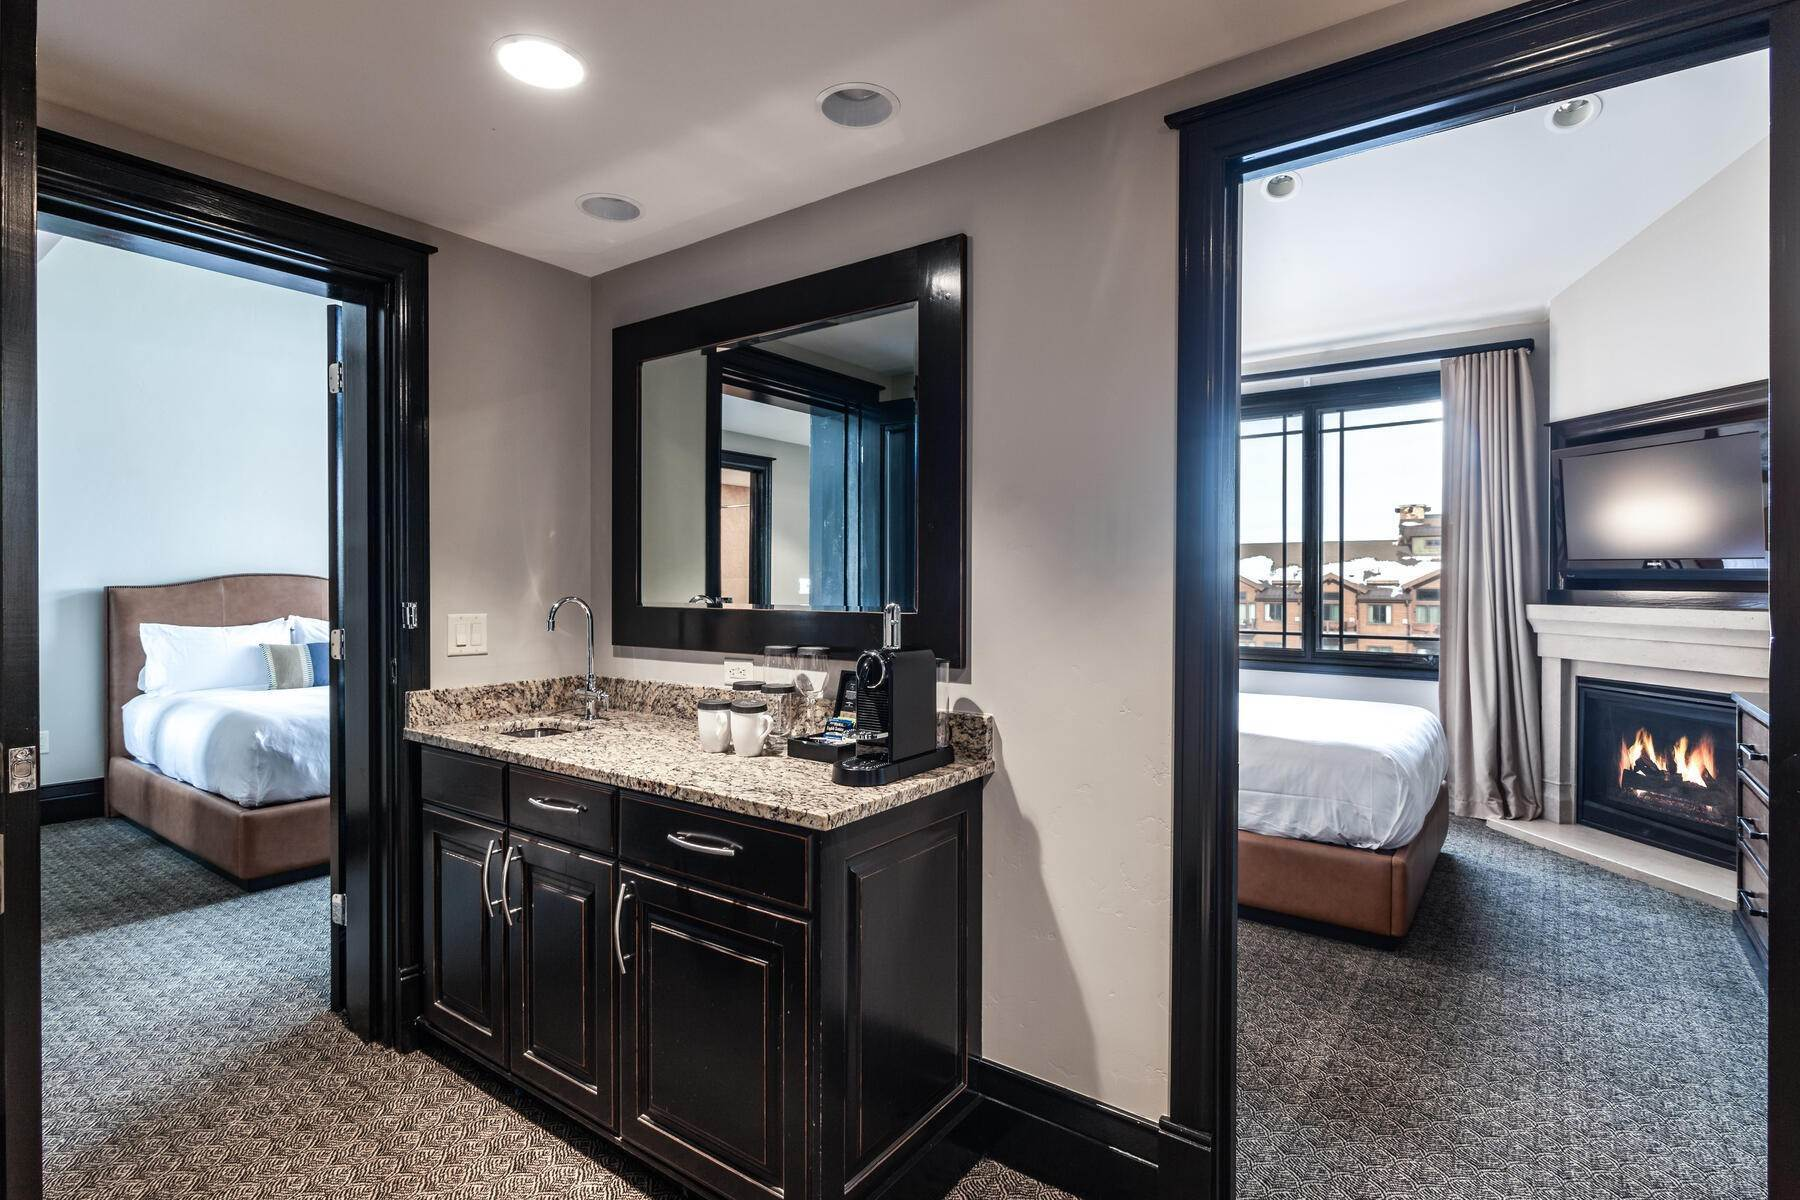 24. Condominiums for Sale at Only 4-Bedroom Available at Waldorf Astoria, Top Floor, Penthouse Unit 2100 W Frostwood Blvd, #7117 Park City, Utah 84098 United States